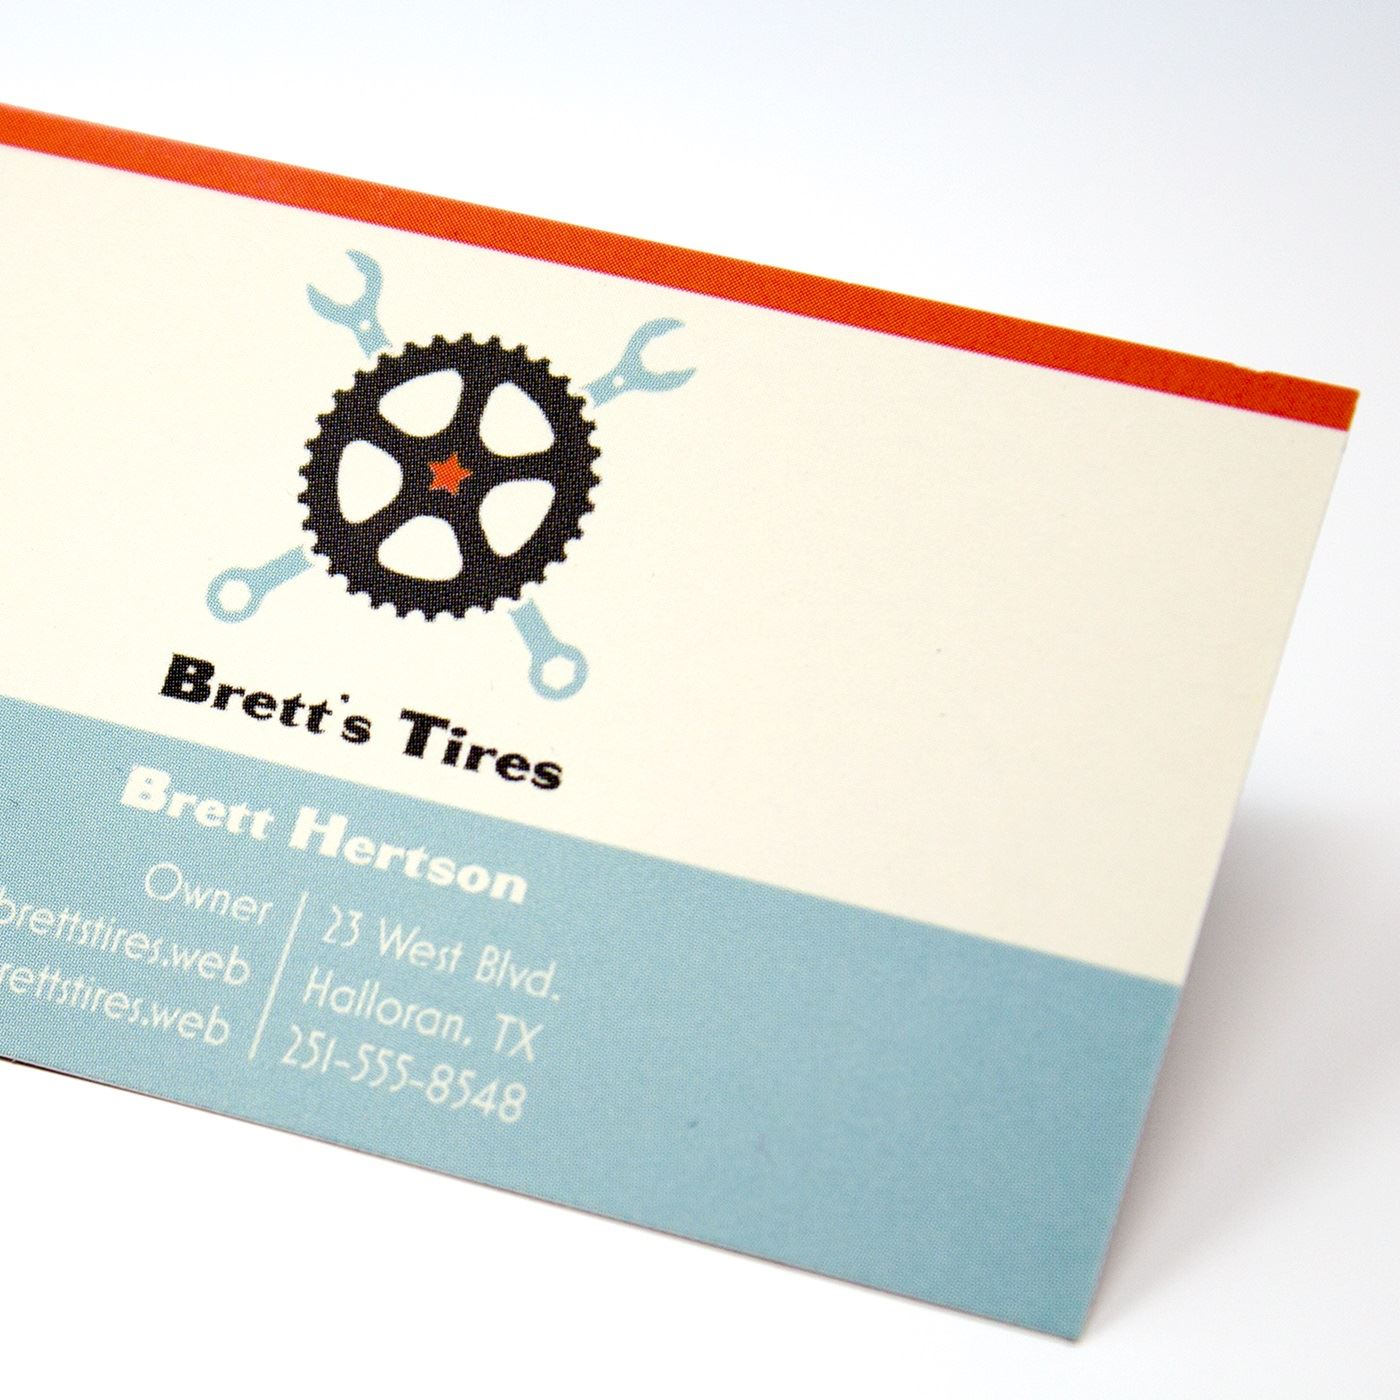 Soft touch business cards soft touch coating vistaprint soft touch business cards colourmoves